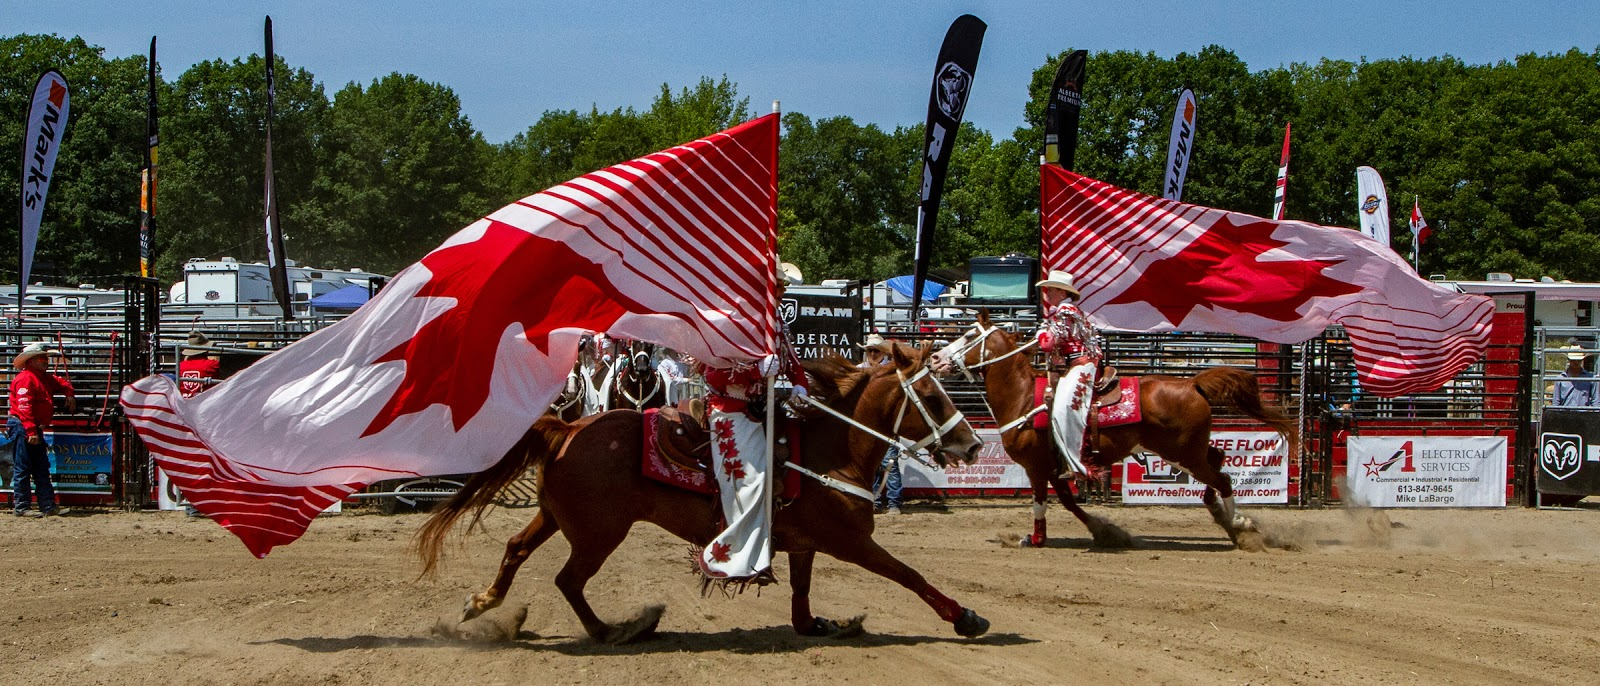 Canadian Cowgirls Saddles Up With The Ram Rodeo Tour